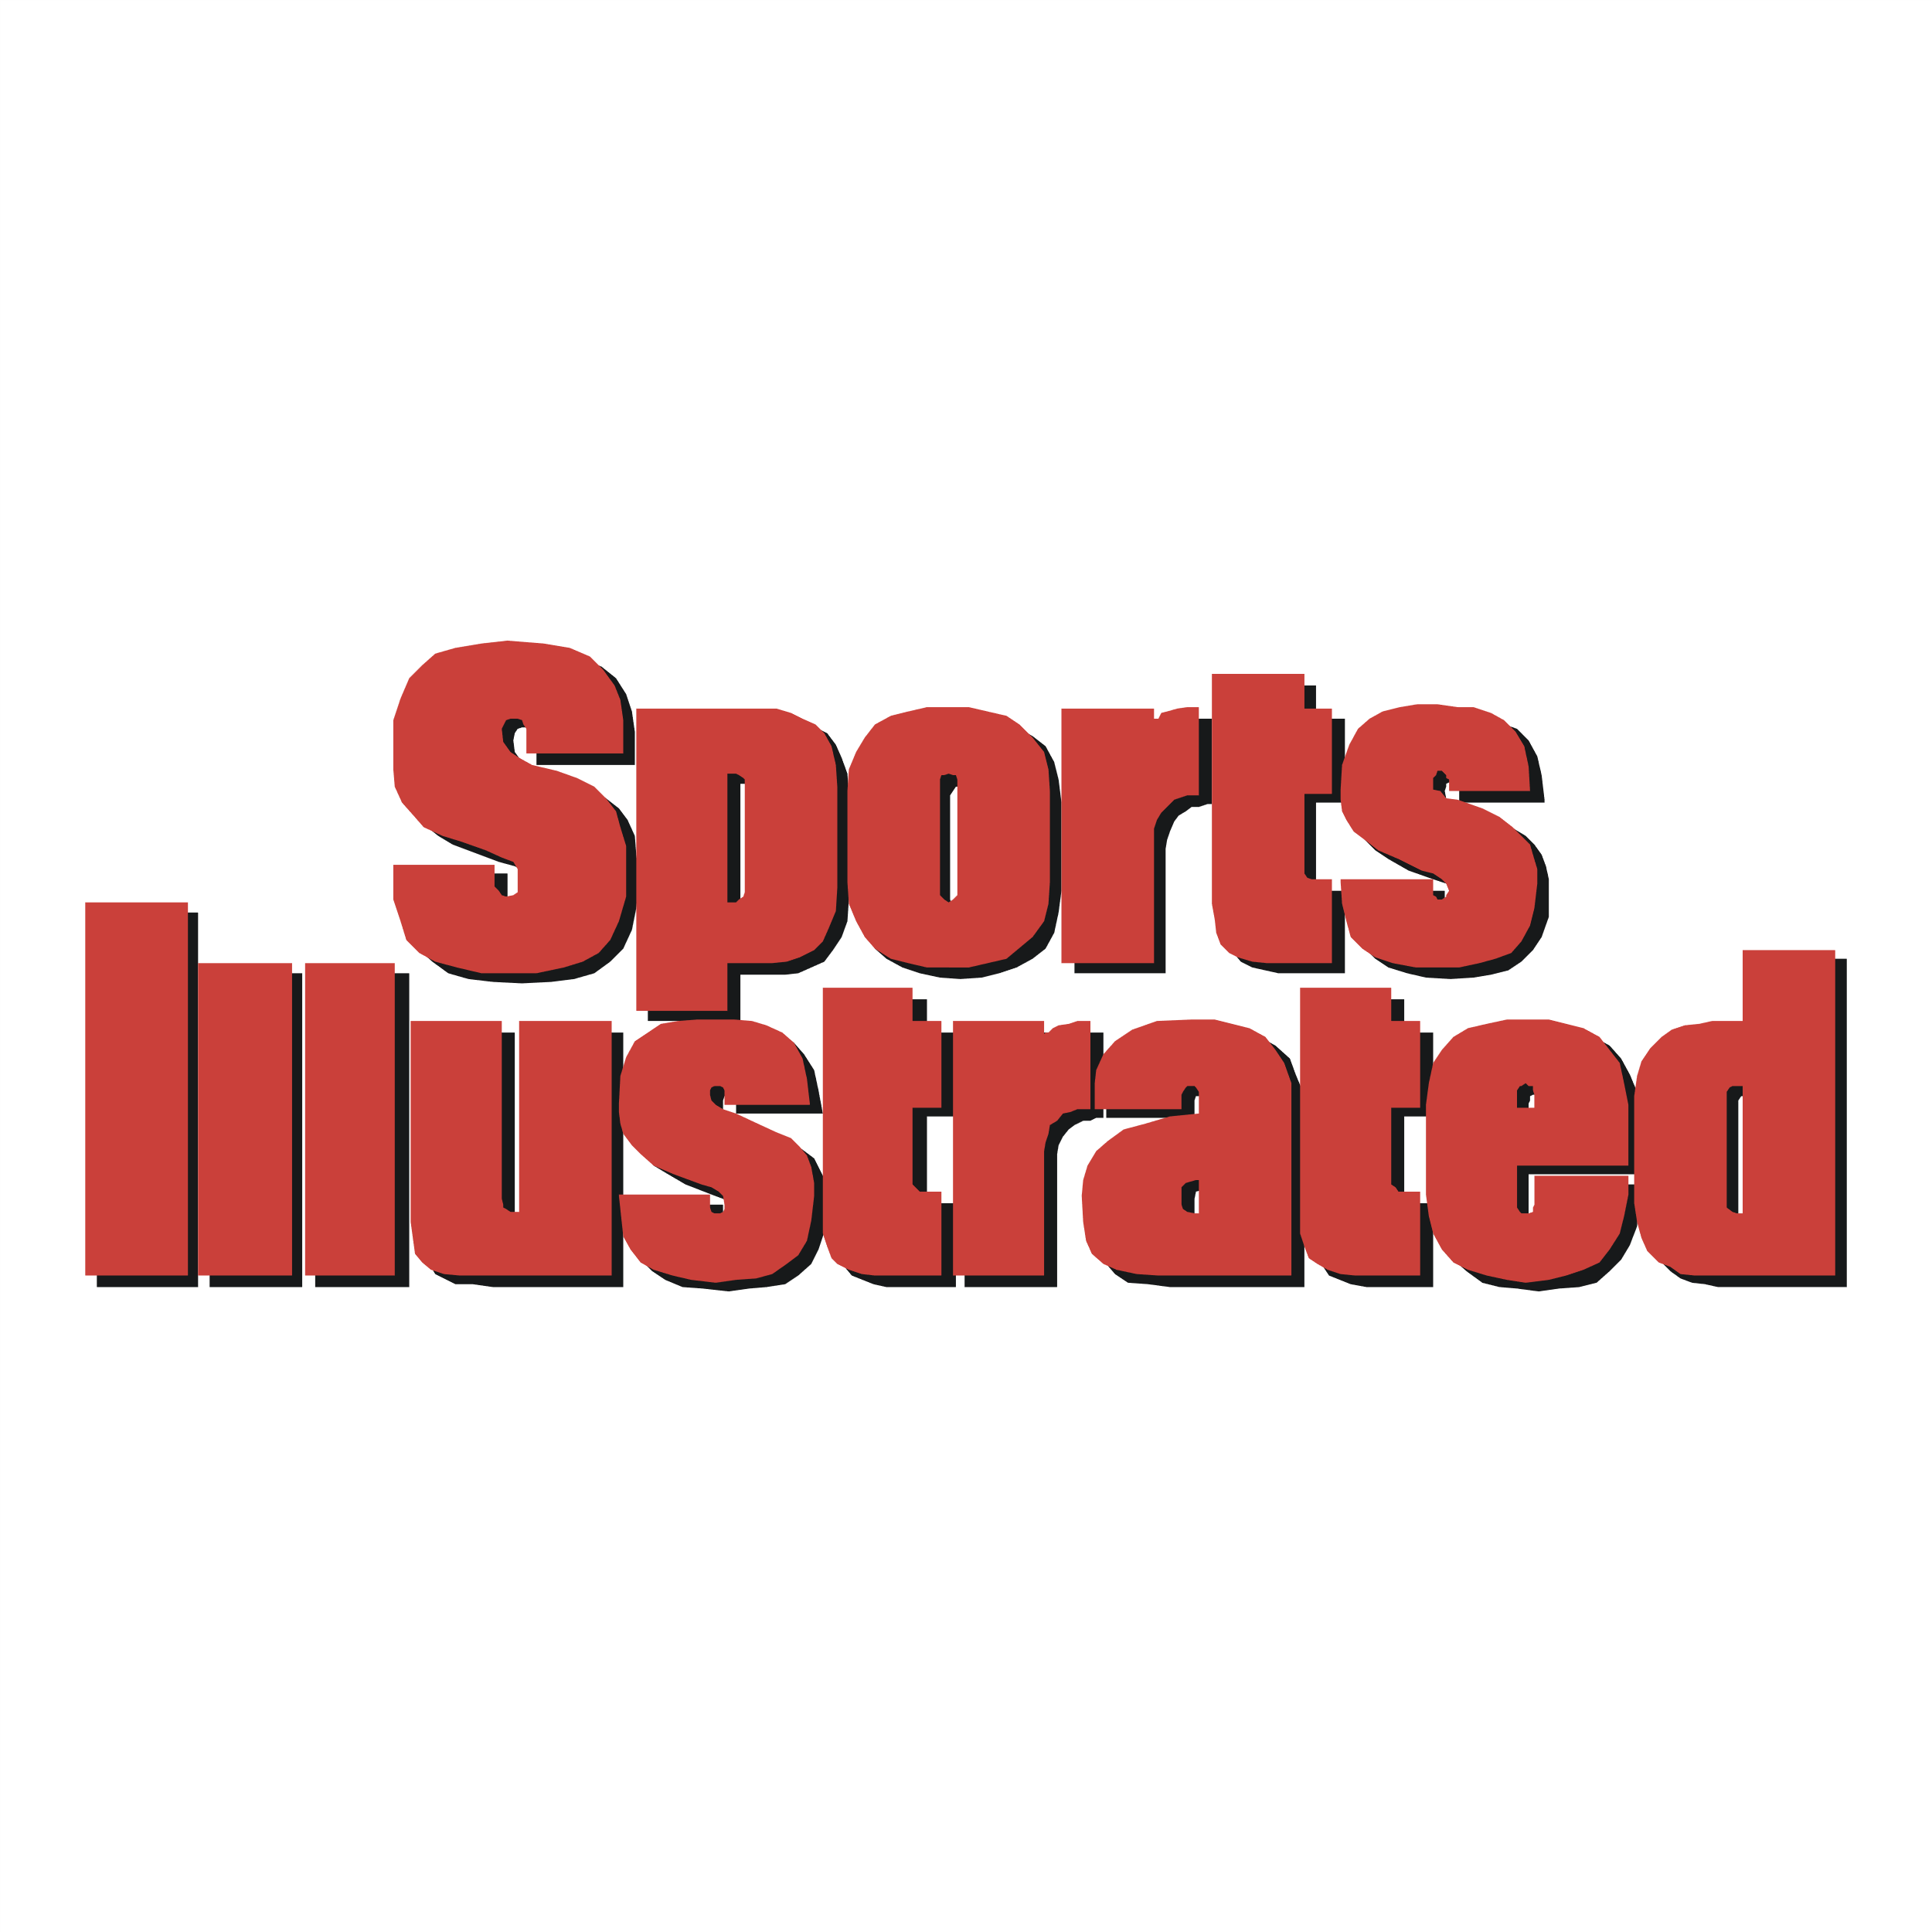 ABG acquires Sports Illustrated